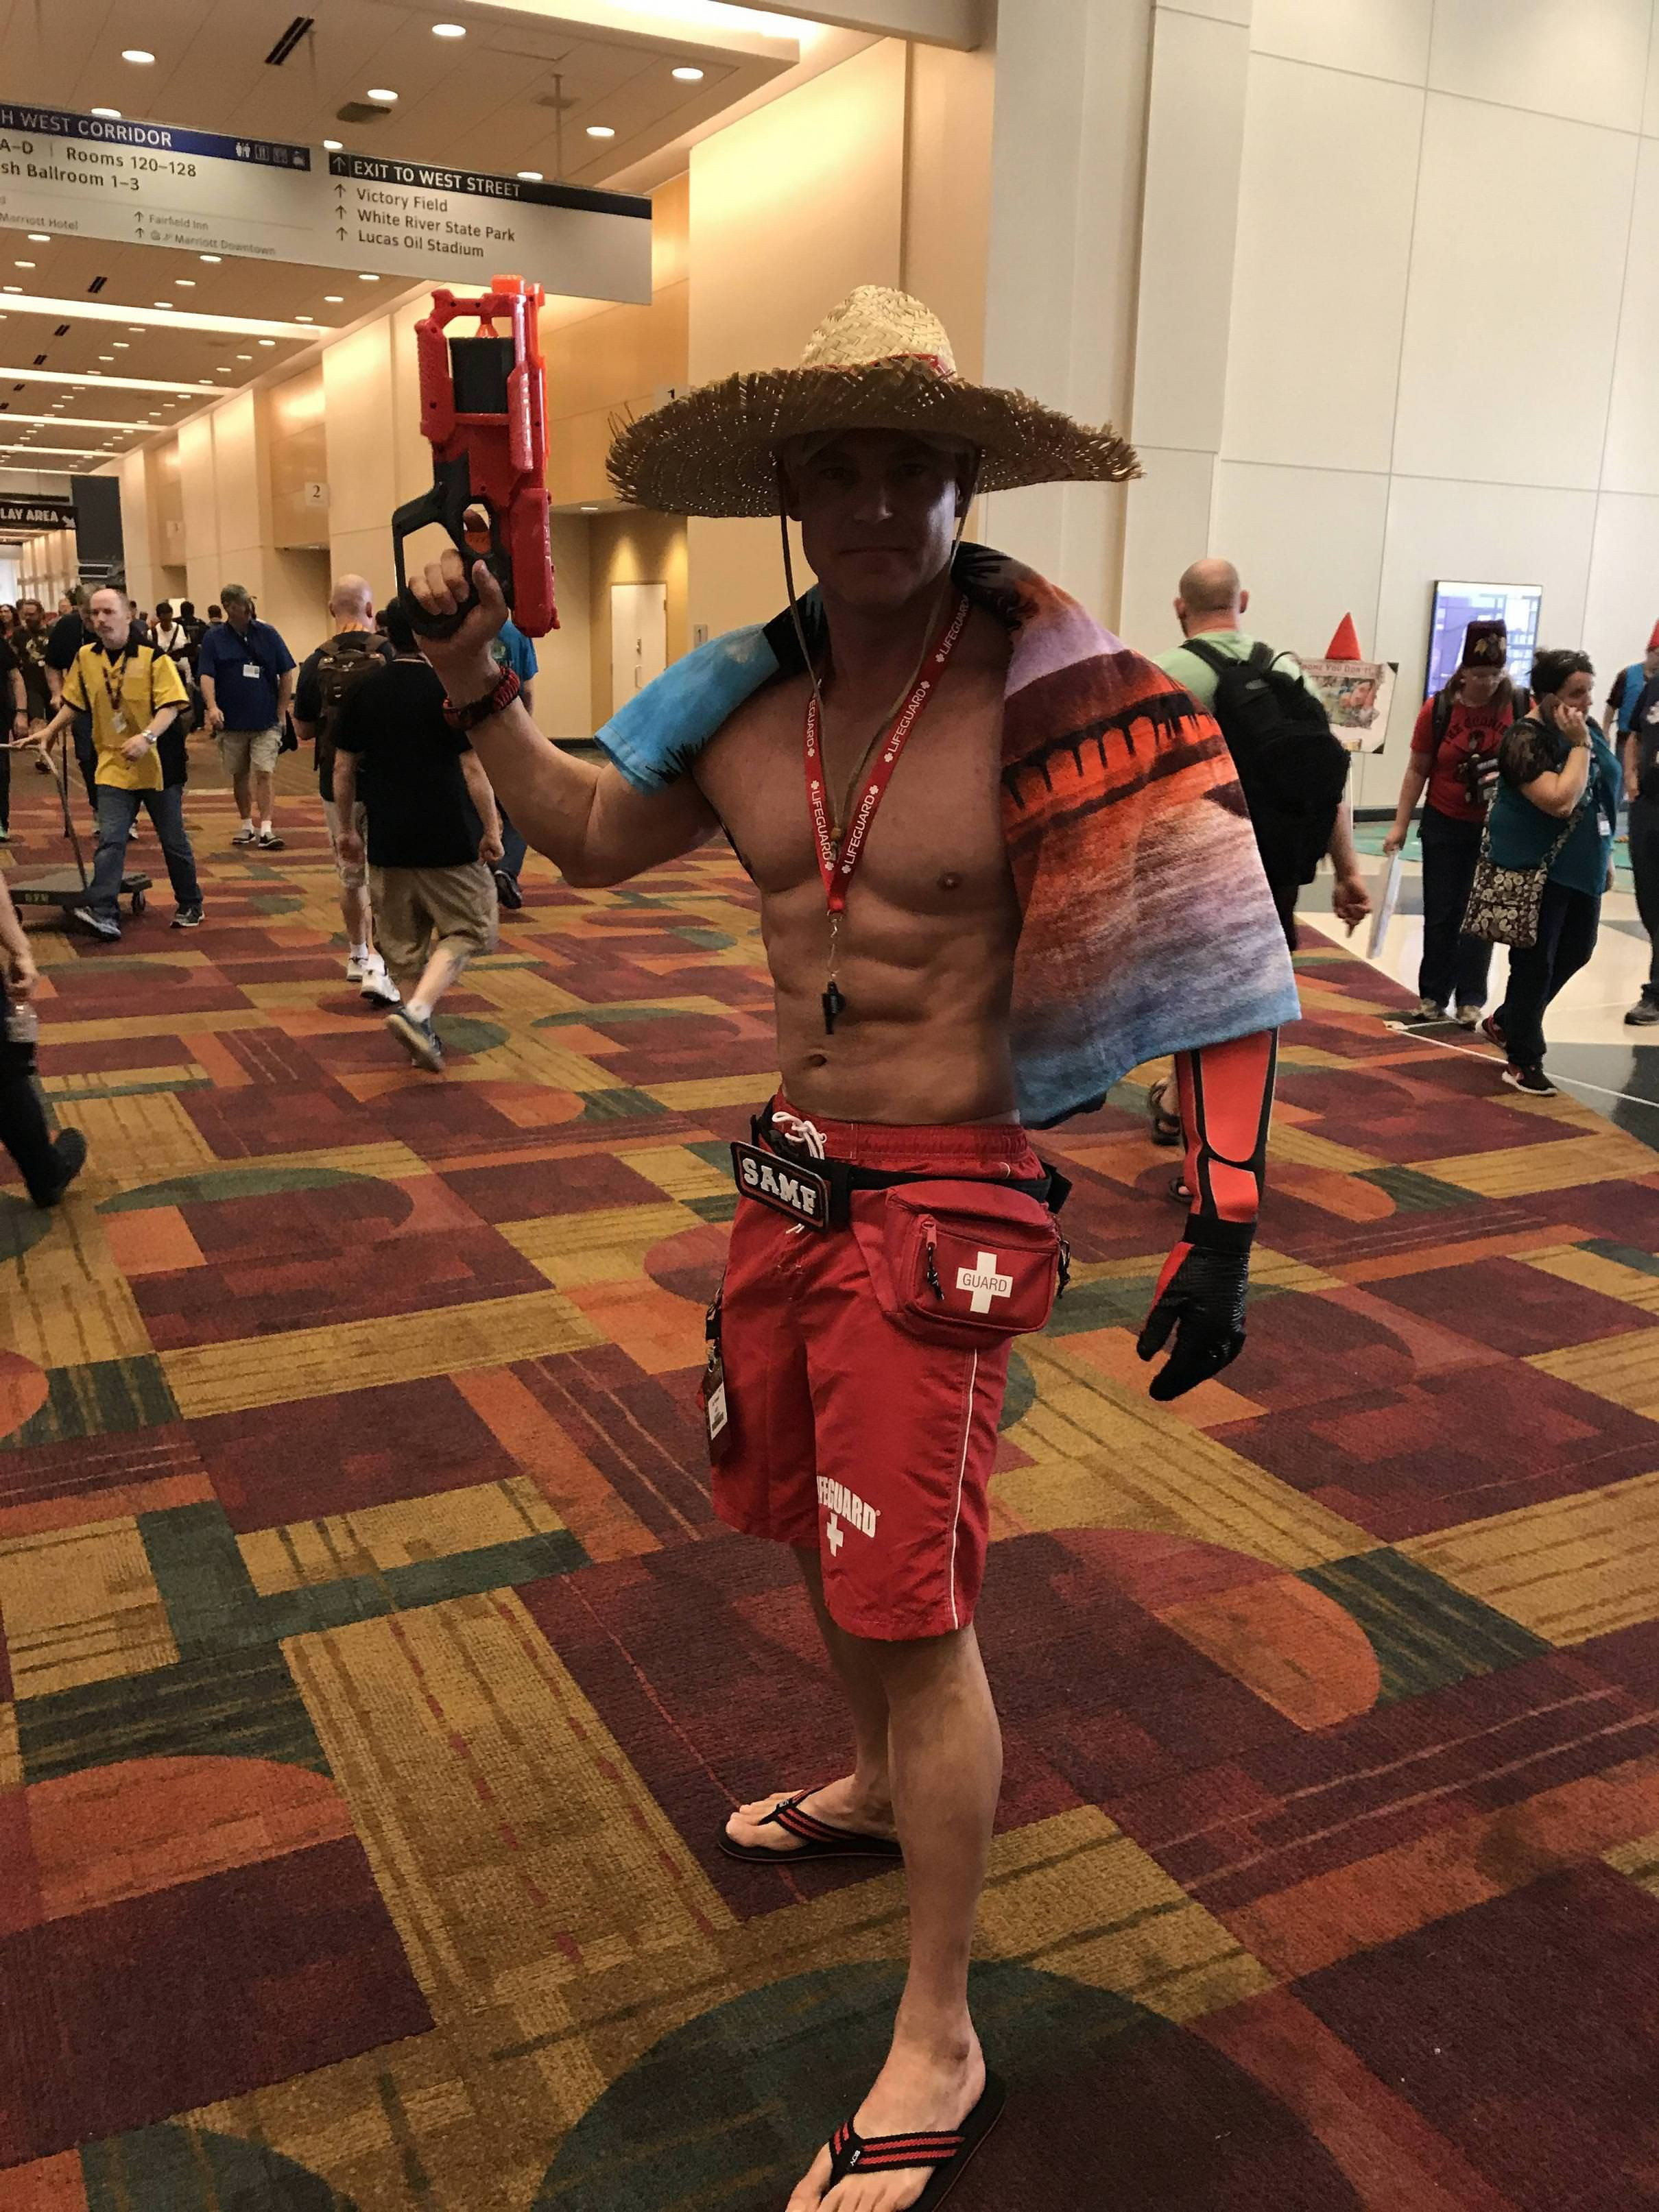 Even straighties can appreciate this male cosplay with